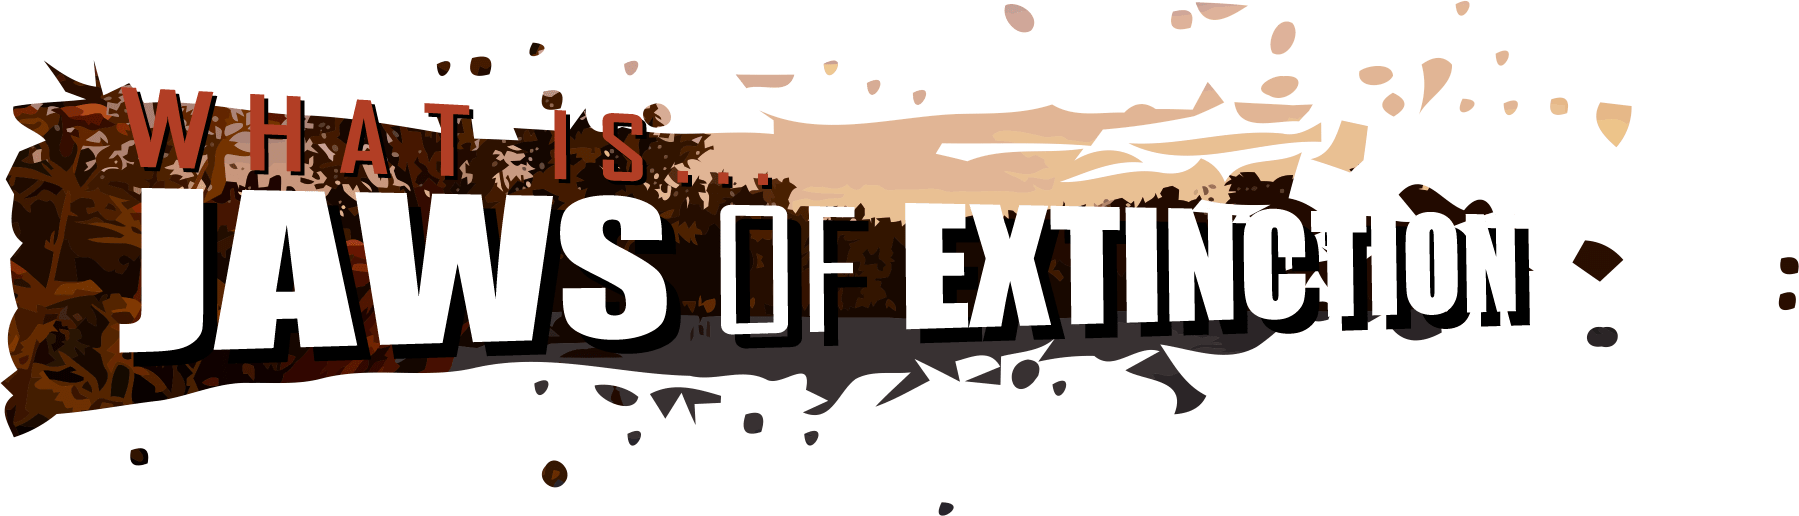 Jaws Of Extinction Server Hosting Logo